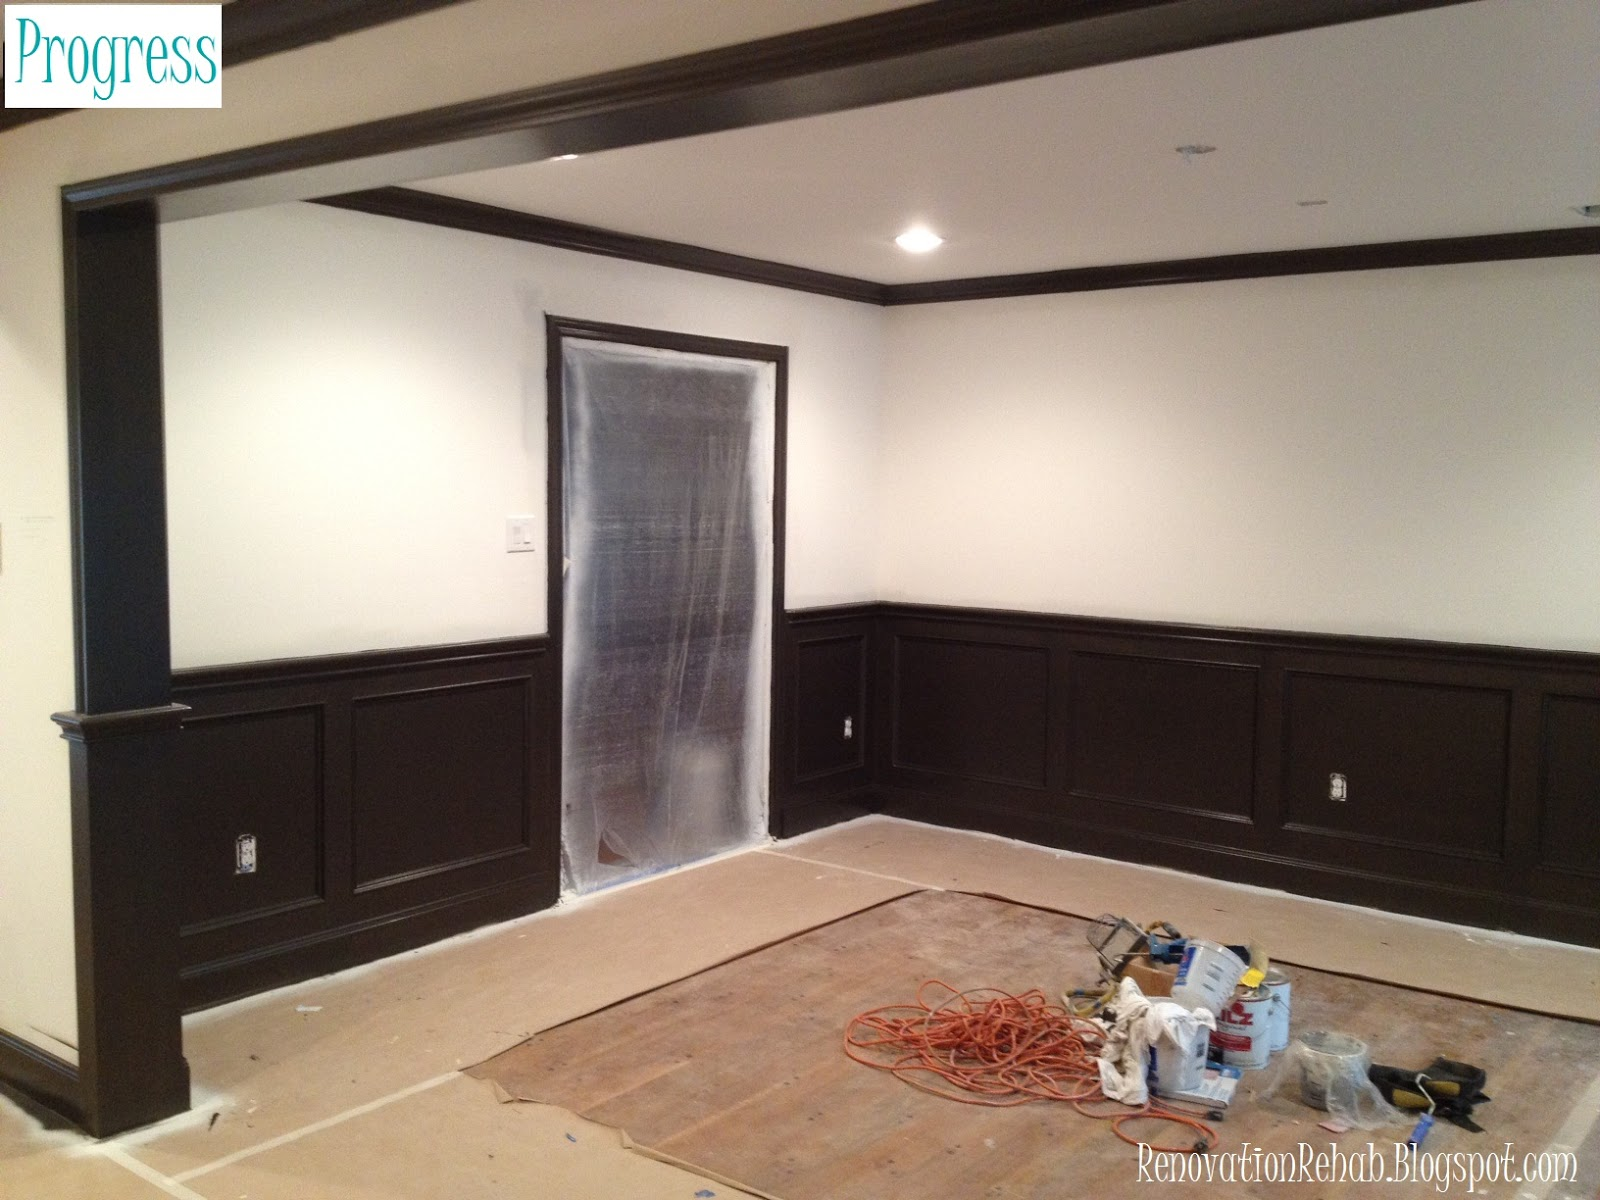 Renovation rehab let the painting commence for Dining room painting ideas with wainscoting